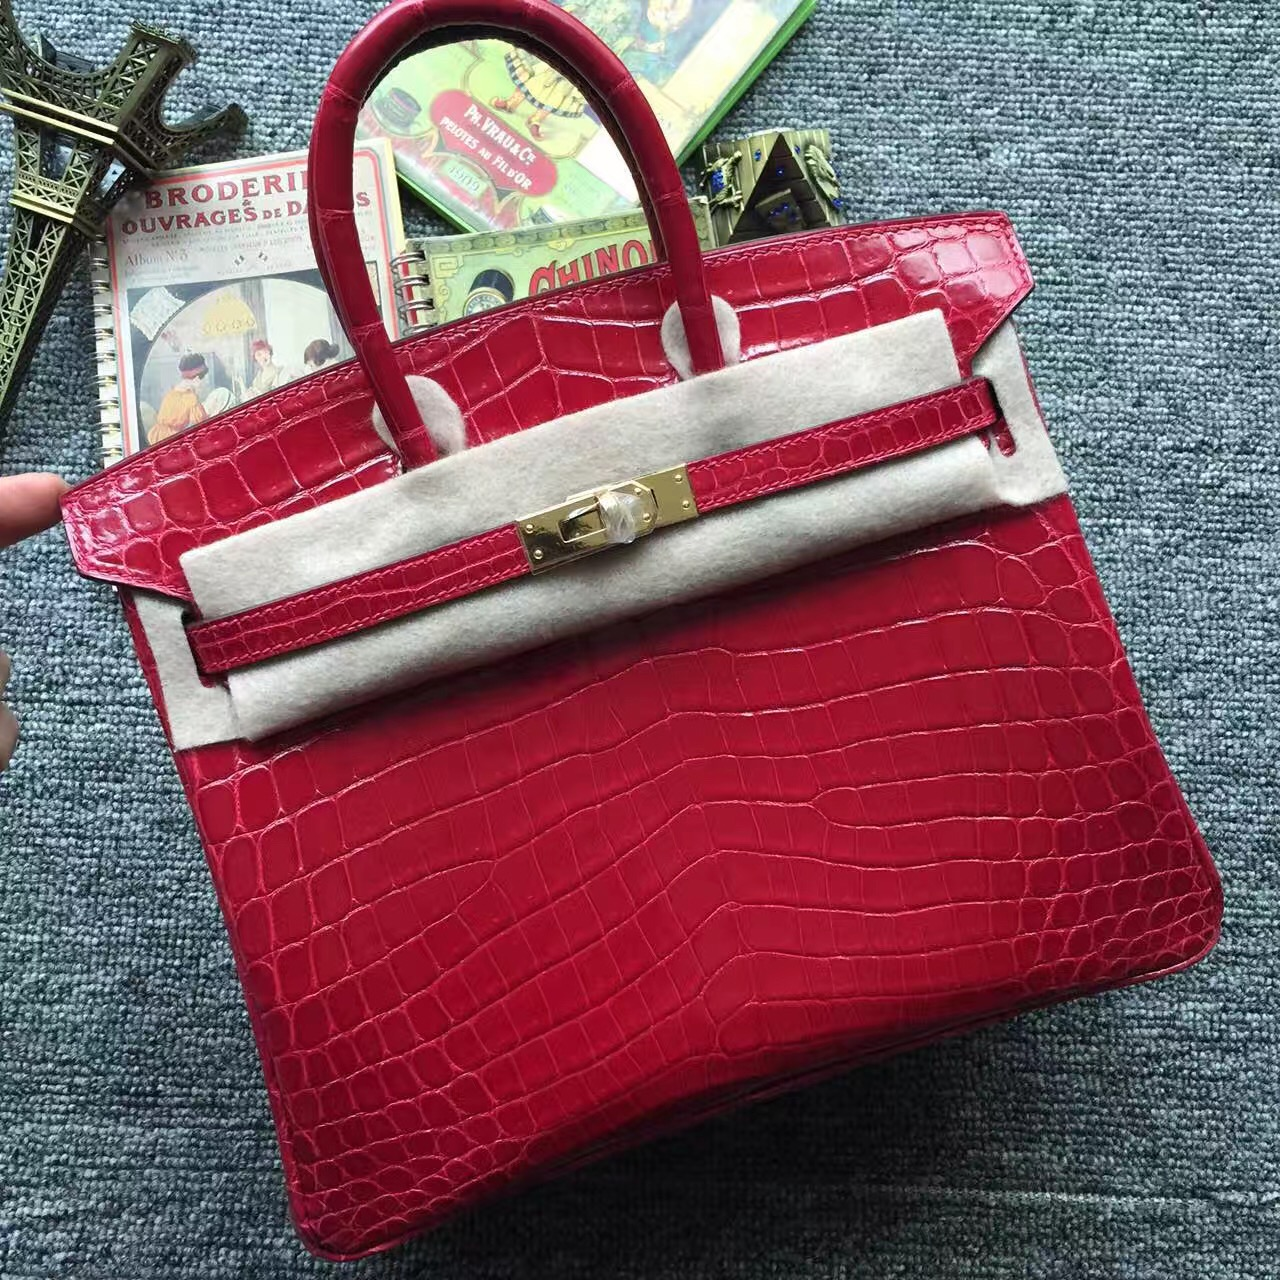 Wholesale Hermes Q5 Rouge Casaque Crocodile Shiny Leather Birkin Bag 25cm